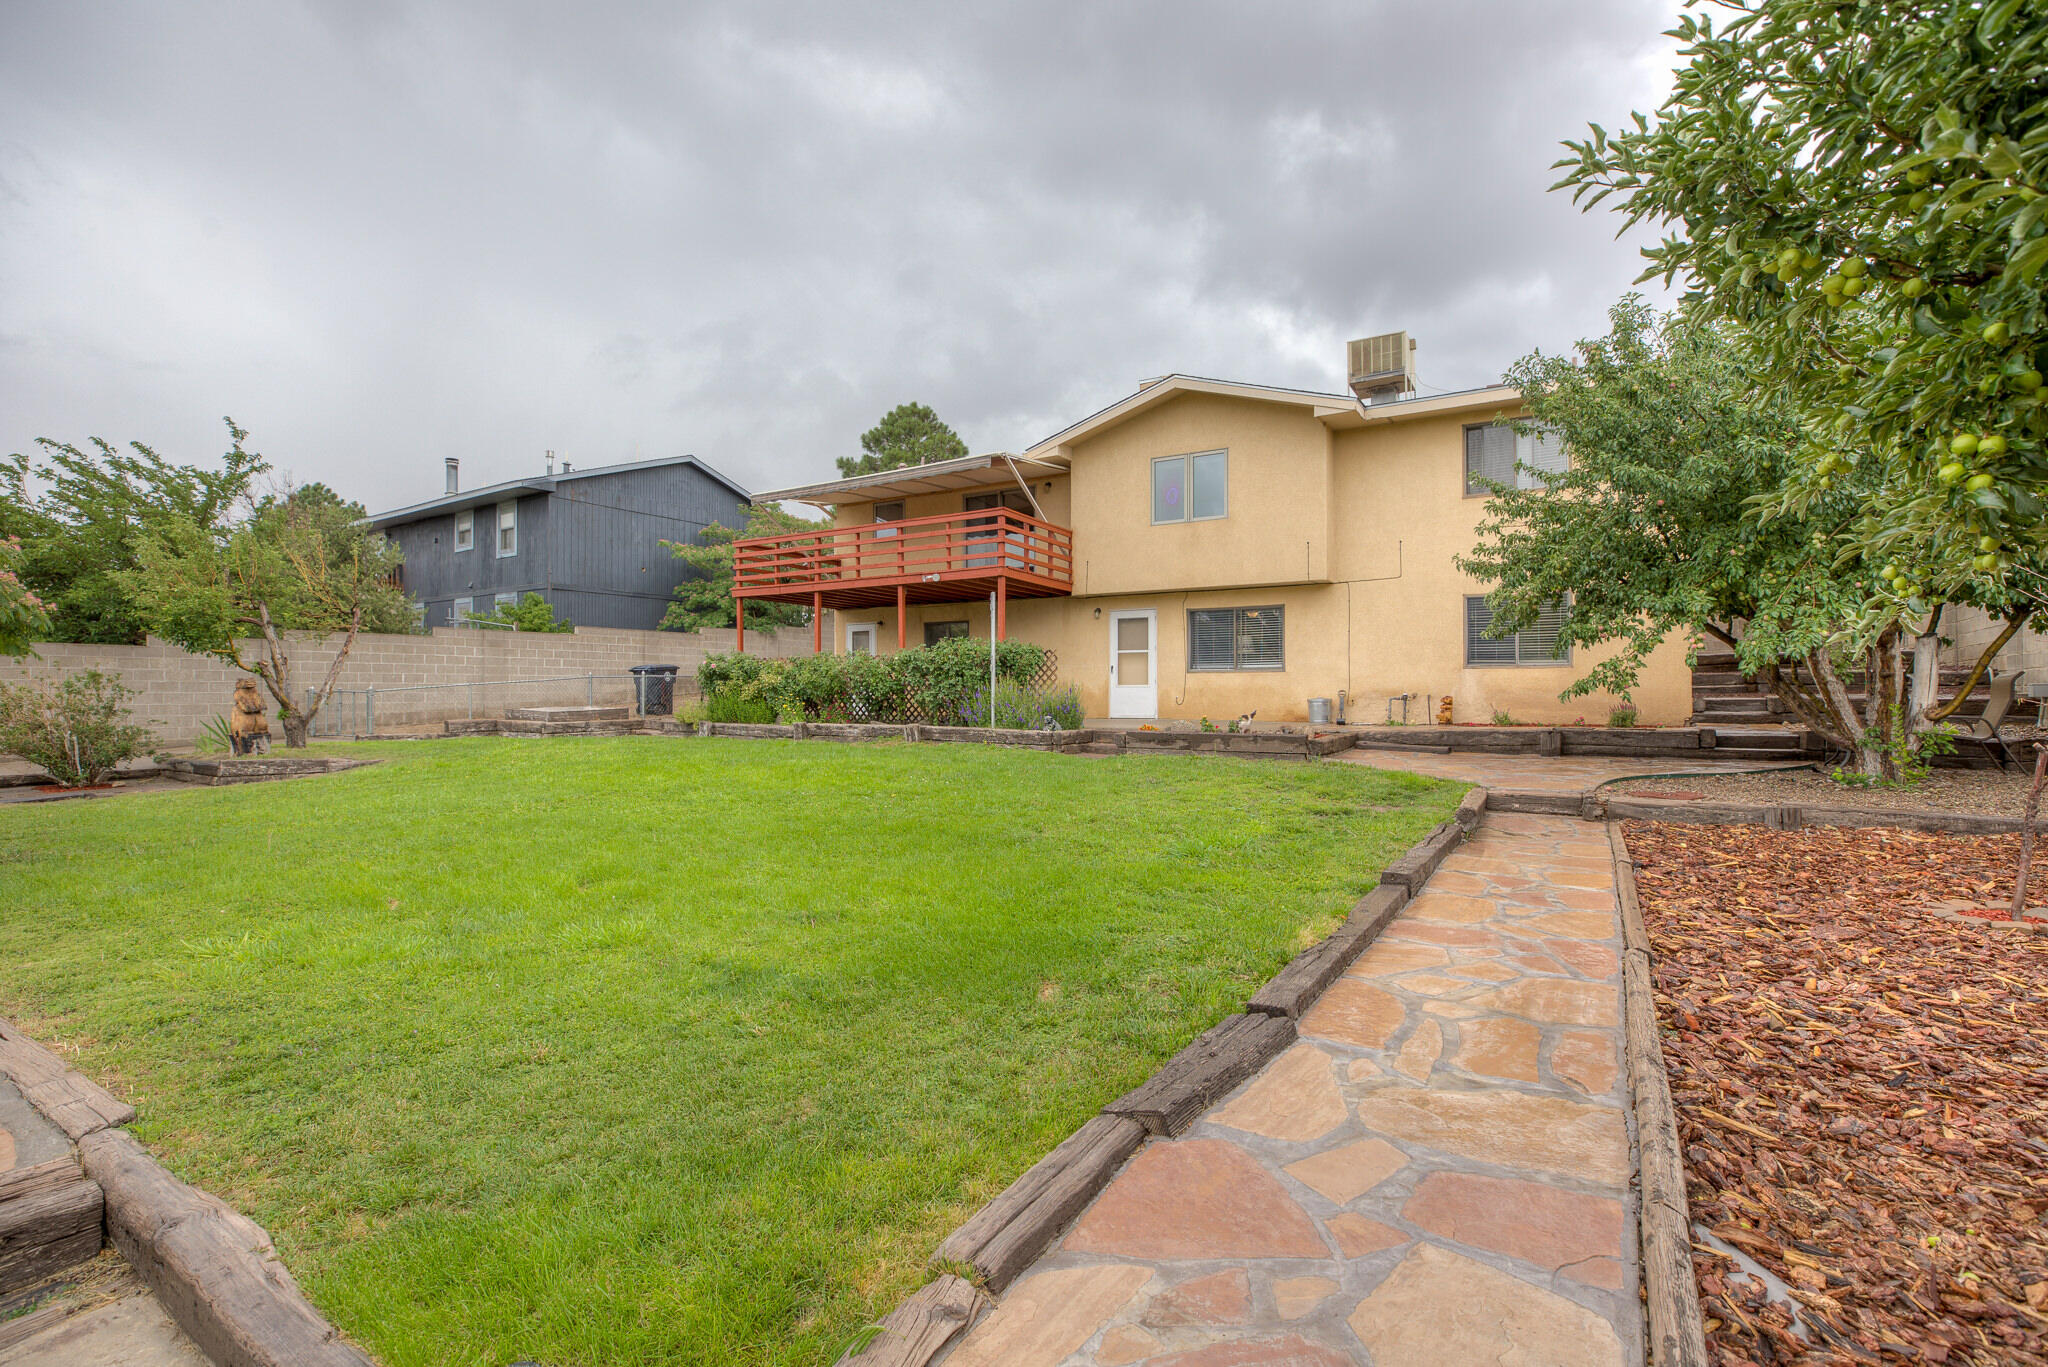 PRICED TO SELL!!  Nestled at the base of the foothills and hiking trails, this home has 2 MBR's  (perfect teen/inlaw). 3 BR's up, MBR down, 2.75 bath, large pantry/safe room, office not counted as BR, Massive Laundry with storage, 3 RV pads, not including drive, Landscape front and rear, Upper deck with awning for great City View, BBQ/dining, complete with fruit trees, 2 patios, 2 sheds, working Jacuzzi, in a quiet setting, yet great for entertaining!   Very deceiving from the front.